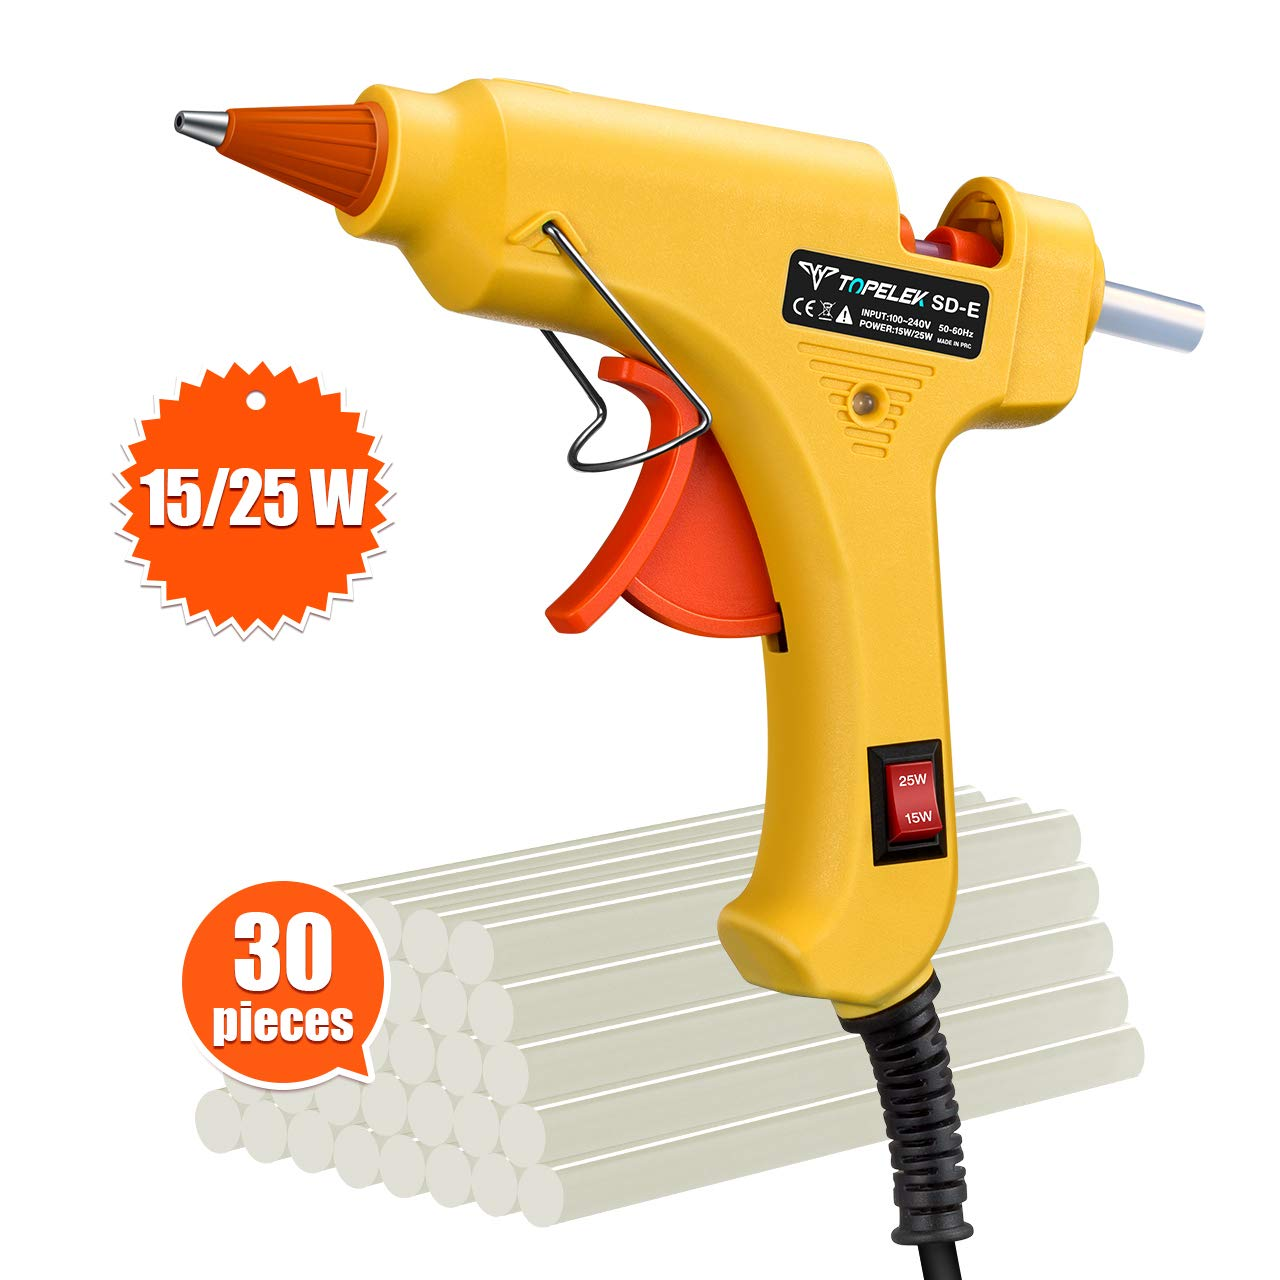 Silverline 583333 230V Hobby Glue Gun Adhesive Wood Plastic Metal Glass Fabric